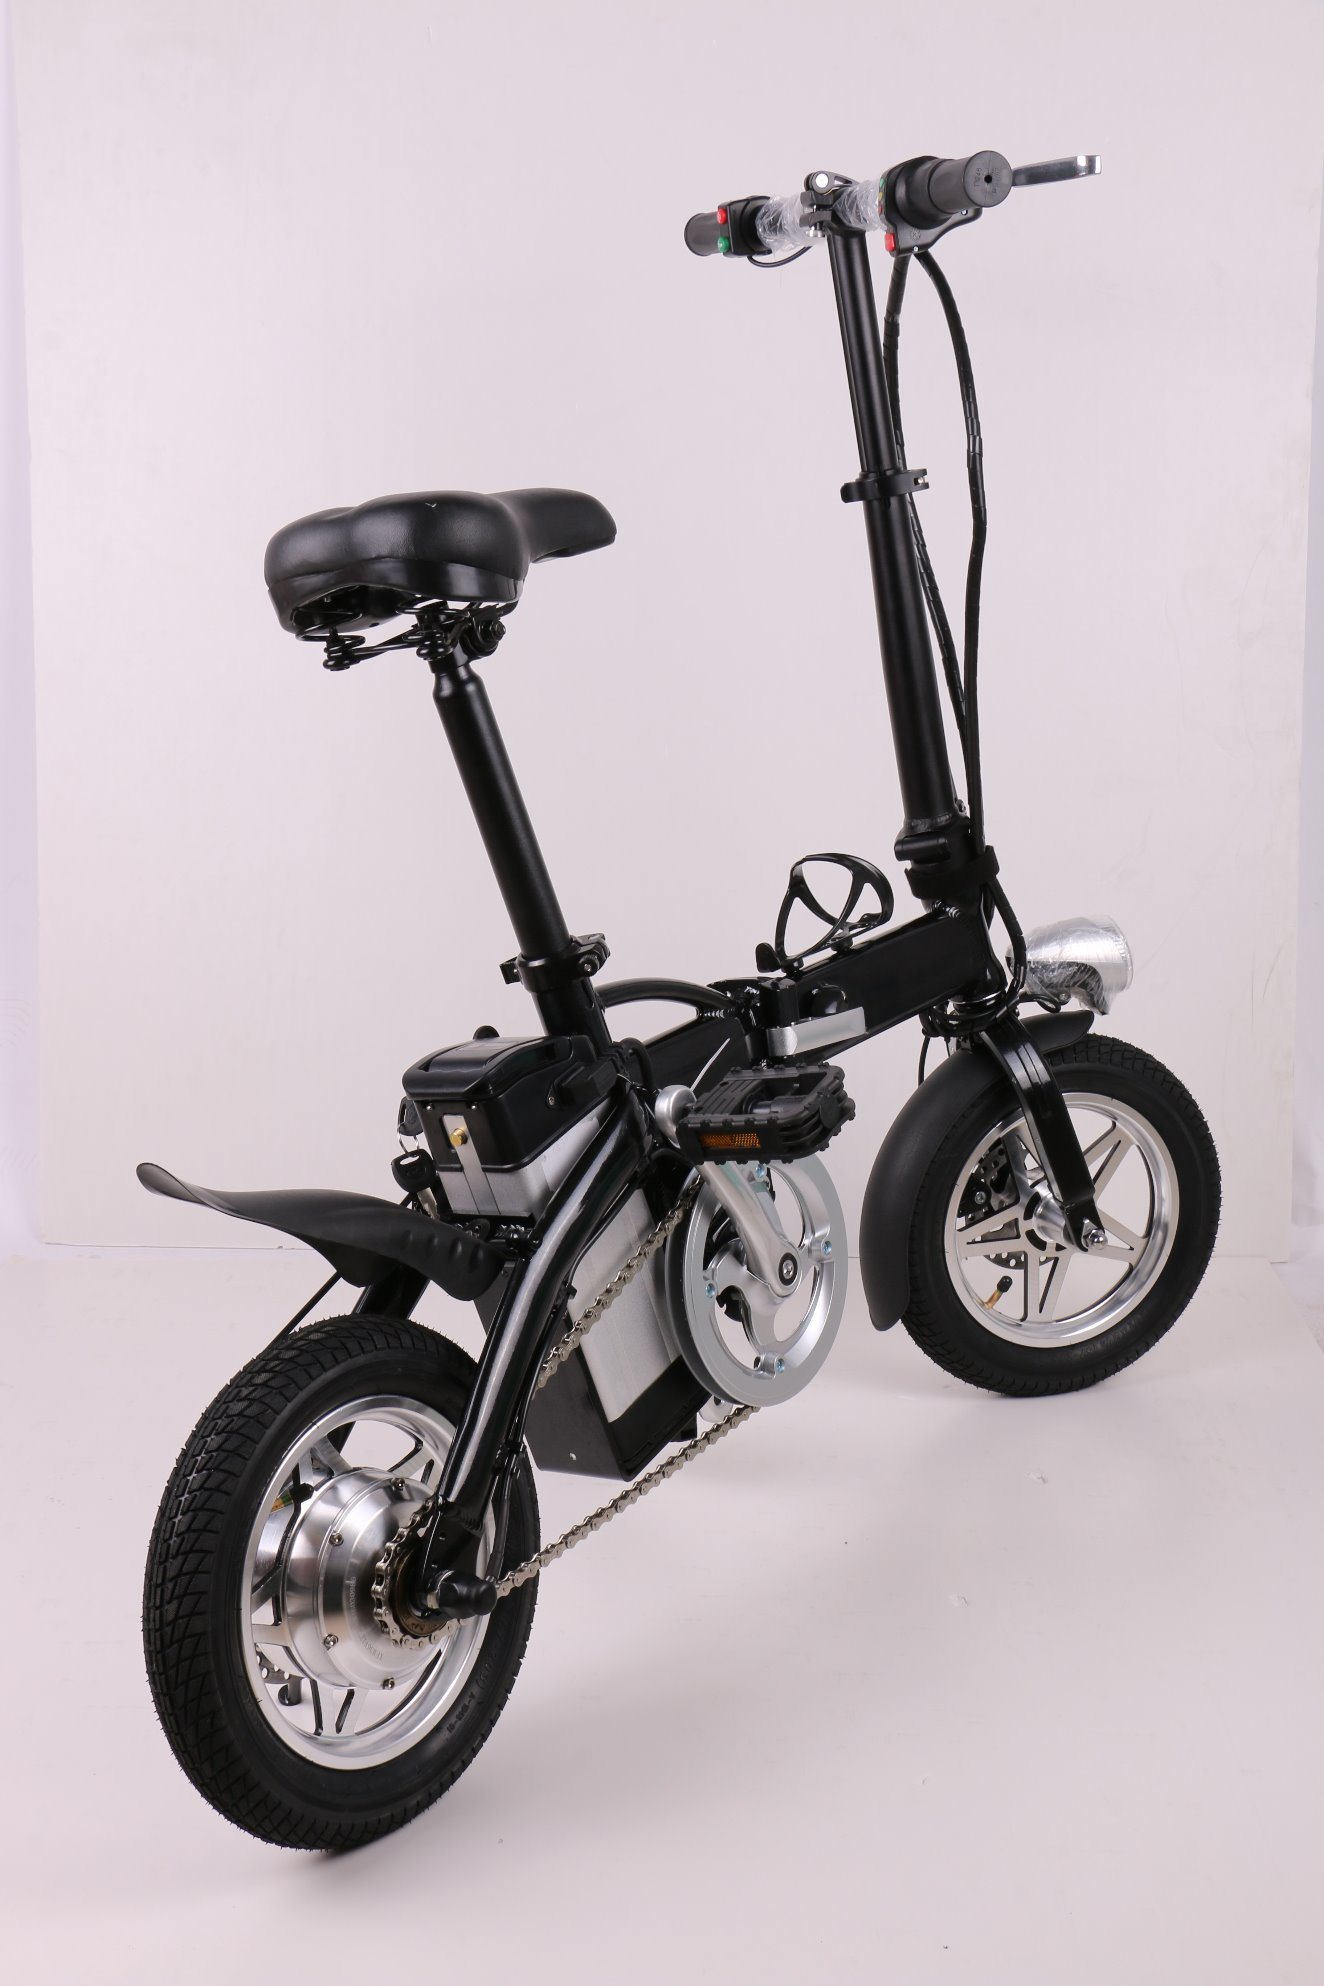 12inch Two Wheel Electric Bicycle 36V Motor Scooter